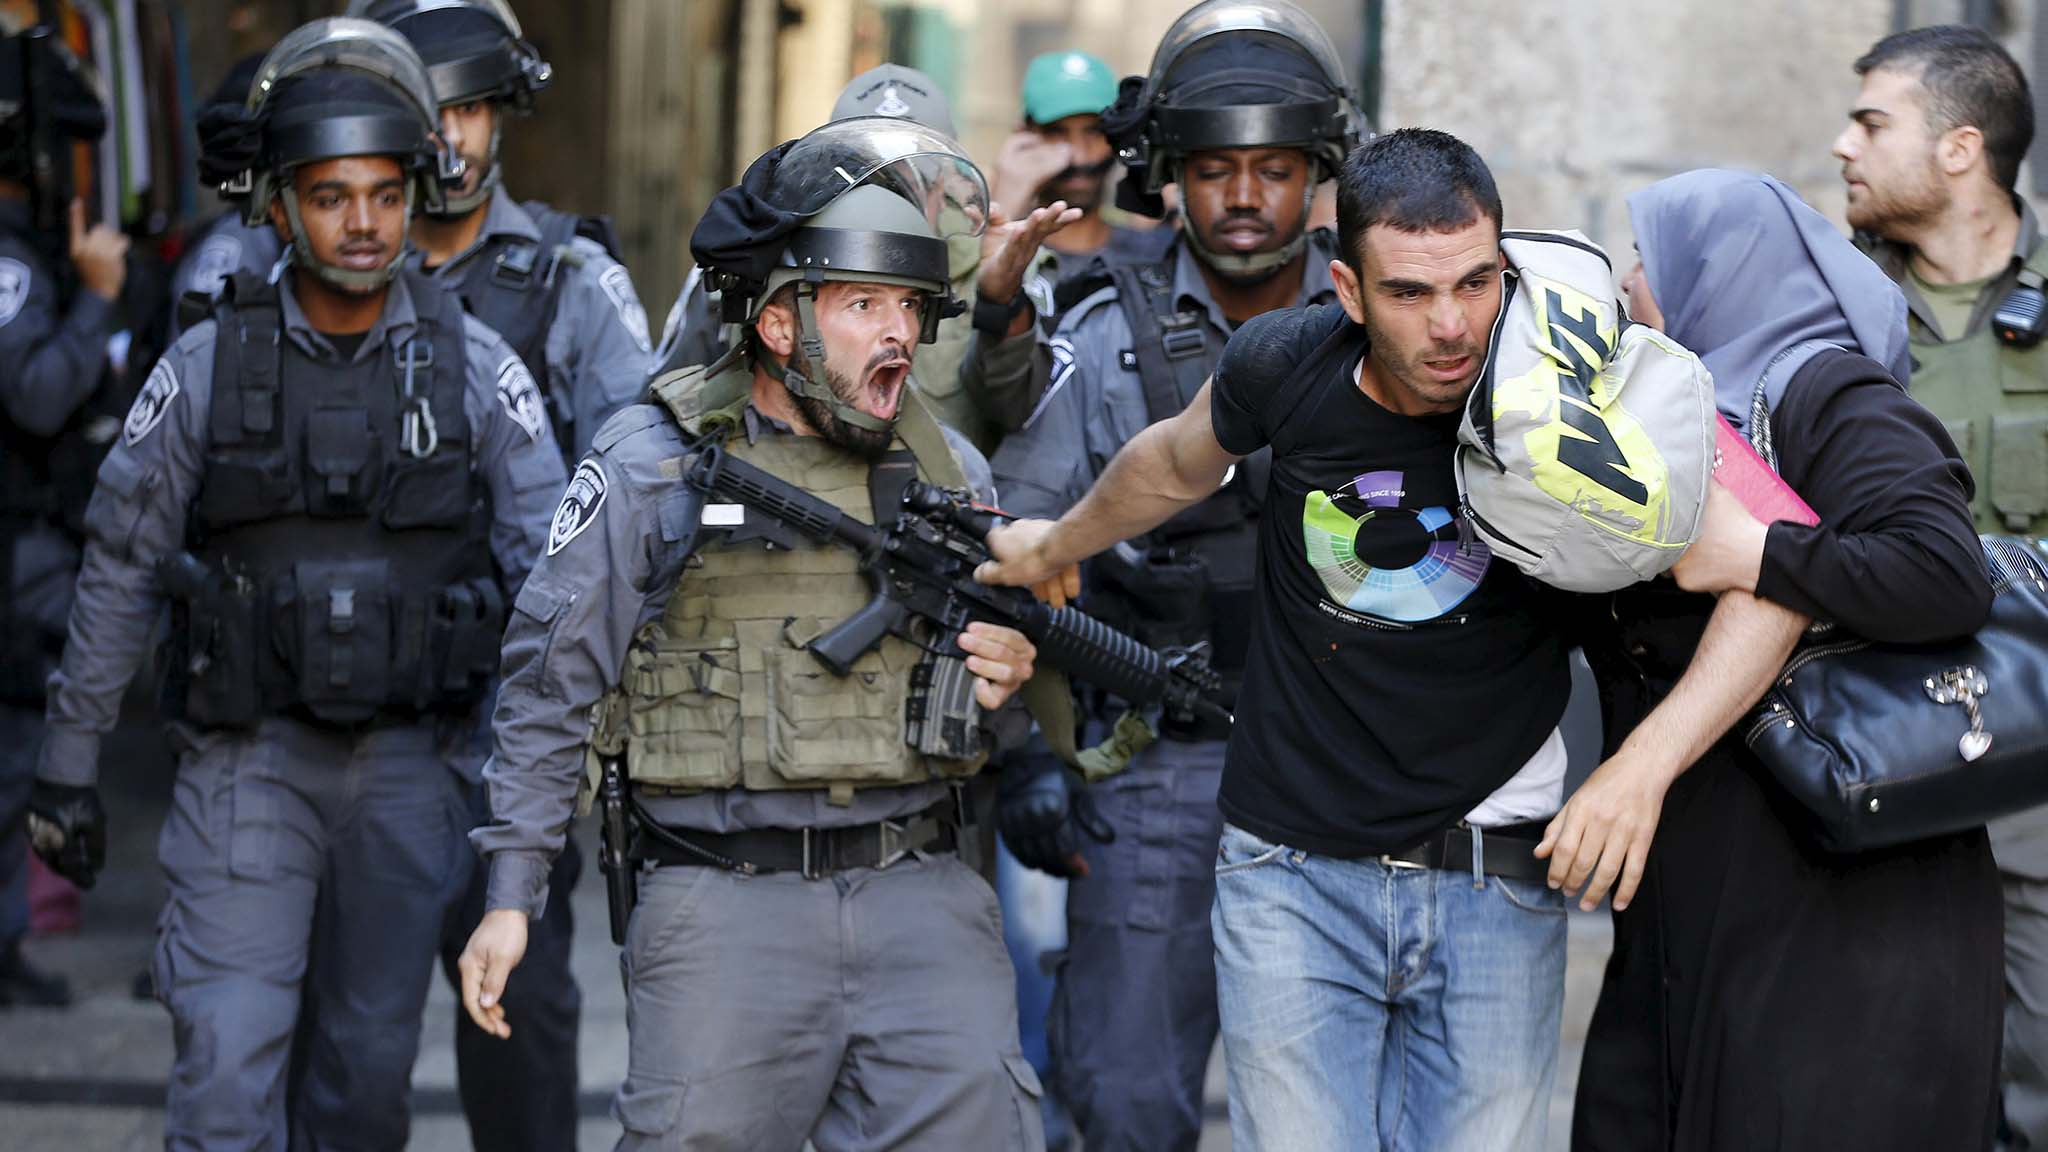 An Israeli policeman prevents a Palestinian man from entering  in Jerusalem's Old City